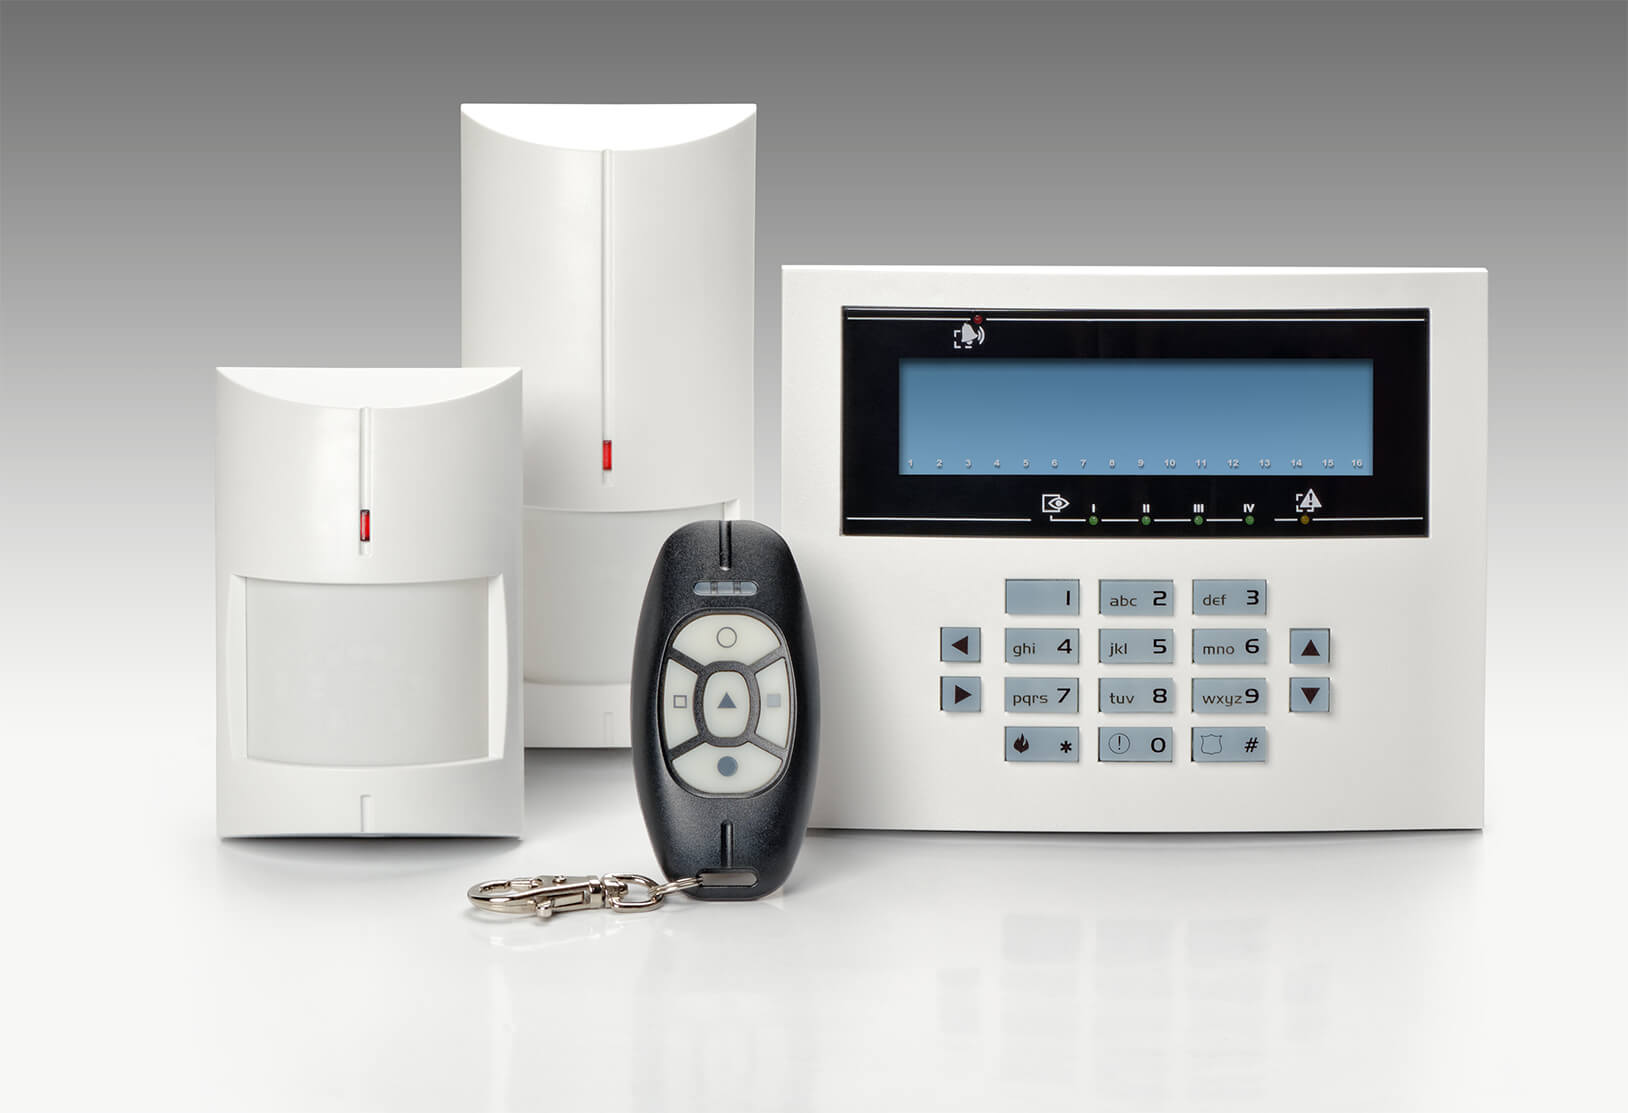 Commercial Burglar Alarms For Business in Hampstead N6  - Local Hampstead N6 burglar alarm company.Call 02078872244 - Dedicated to Safety & Security. Companies, shops and homes ..